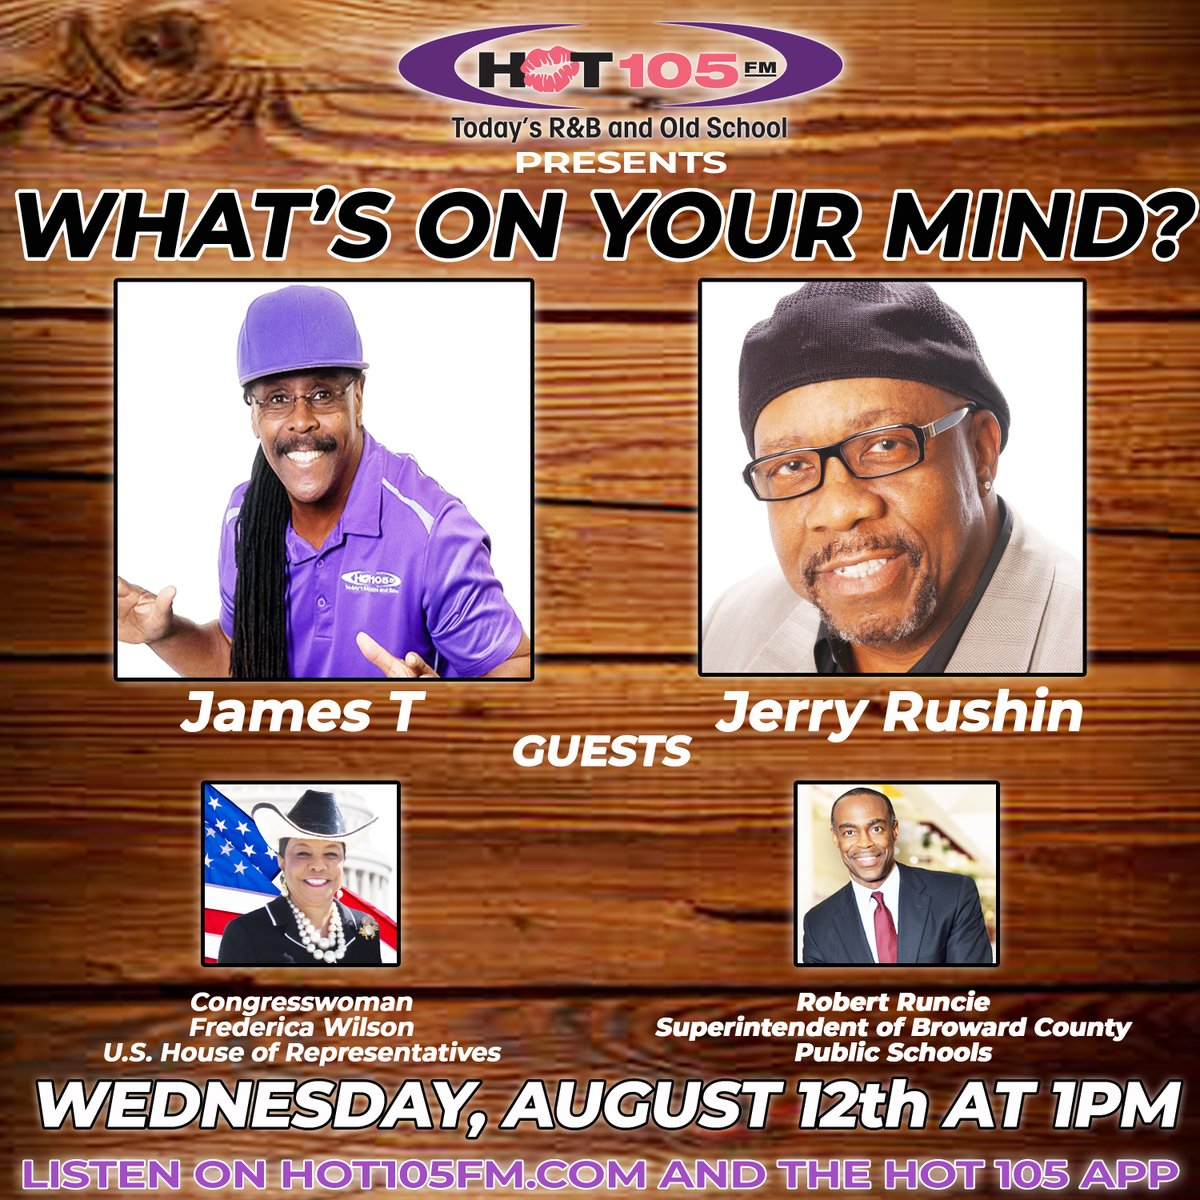 Hot 105 On Twitter Will Your Child Attend School Virtually Or Are They Attending Face To Face Classes Don T Miss This Important Conversation The Hotline Number Is 888 550 9105 Jamest Jerryrushin Congresswomanfredericawilson Robertruncie